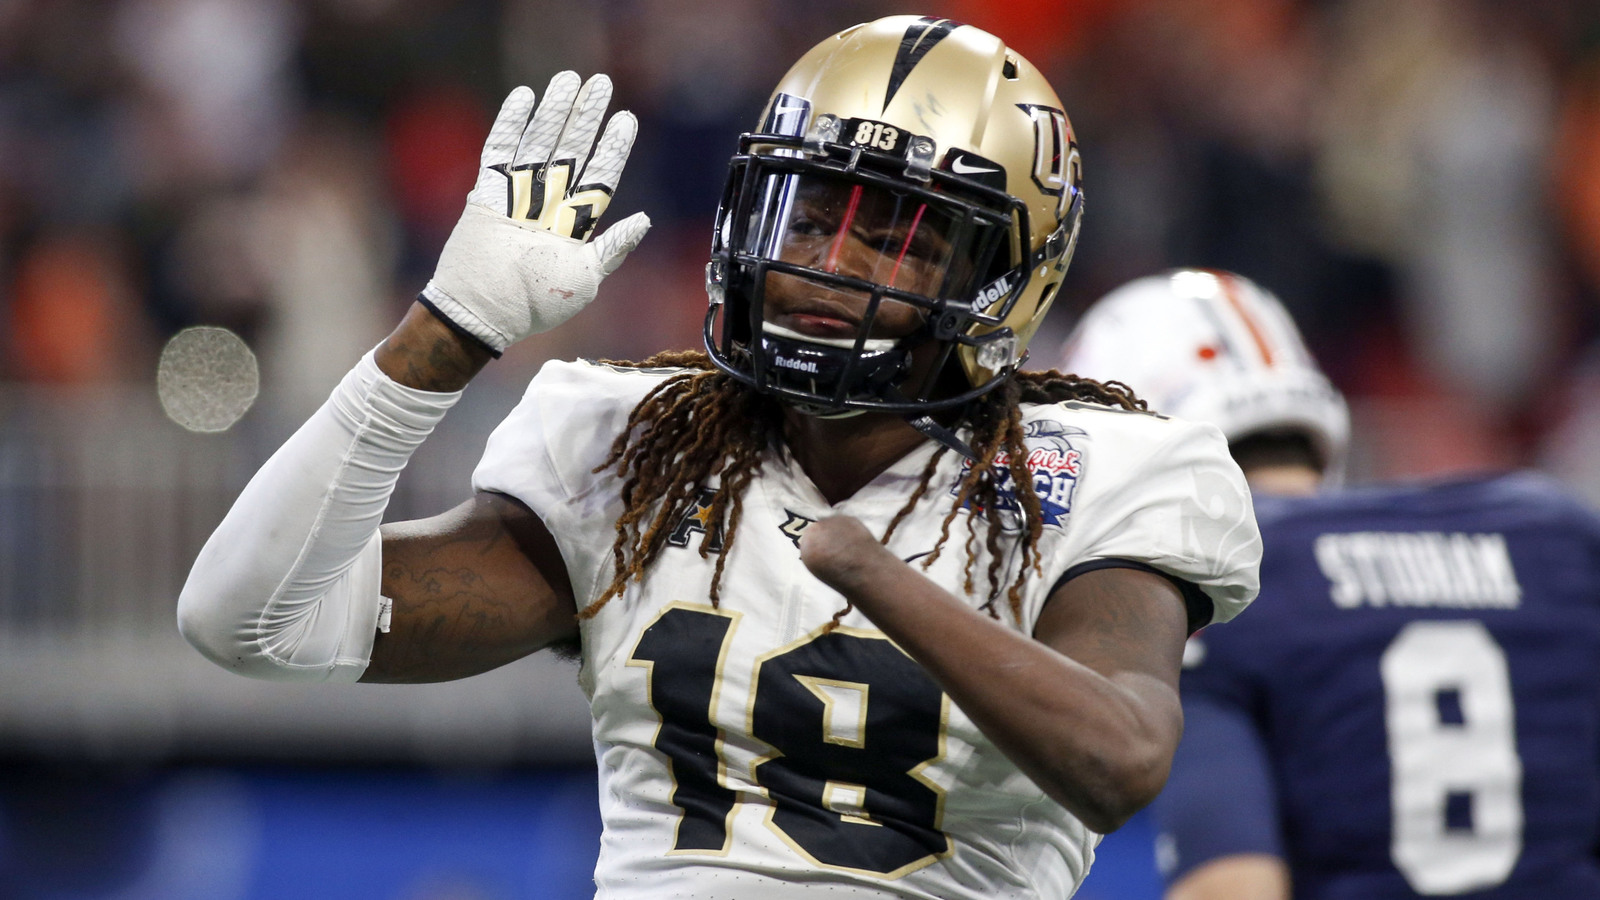 NFL Players Applaud UCF Star Shaquem Griffin's Combine Performance